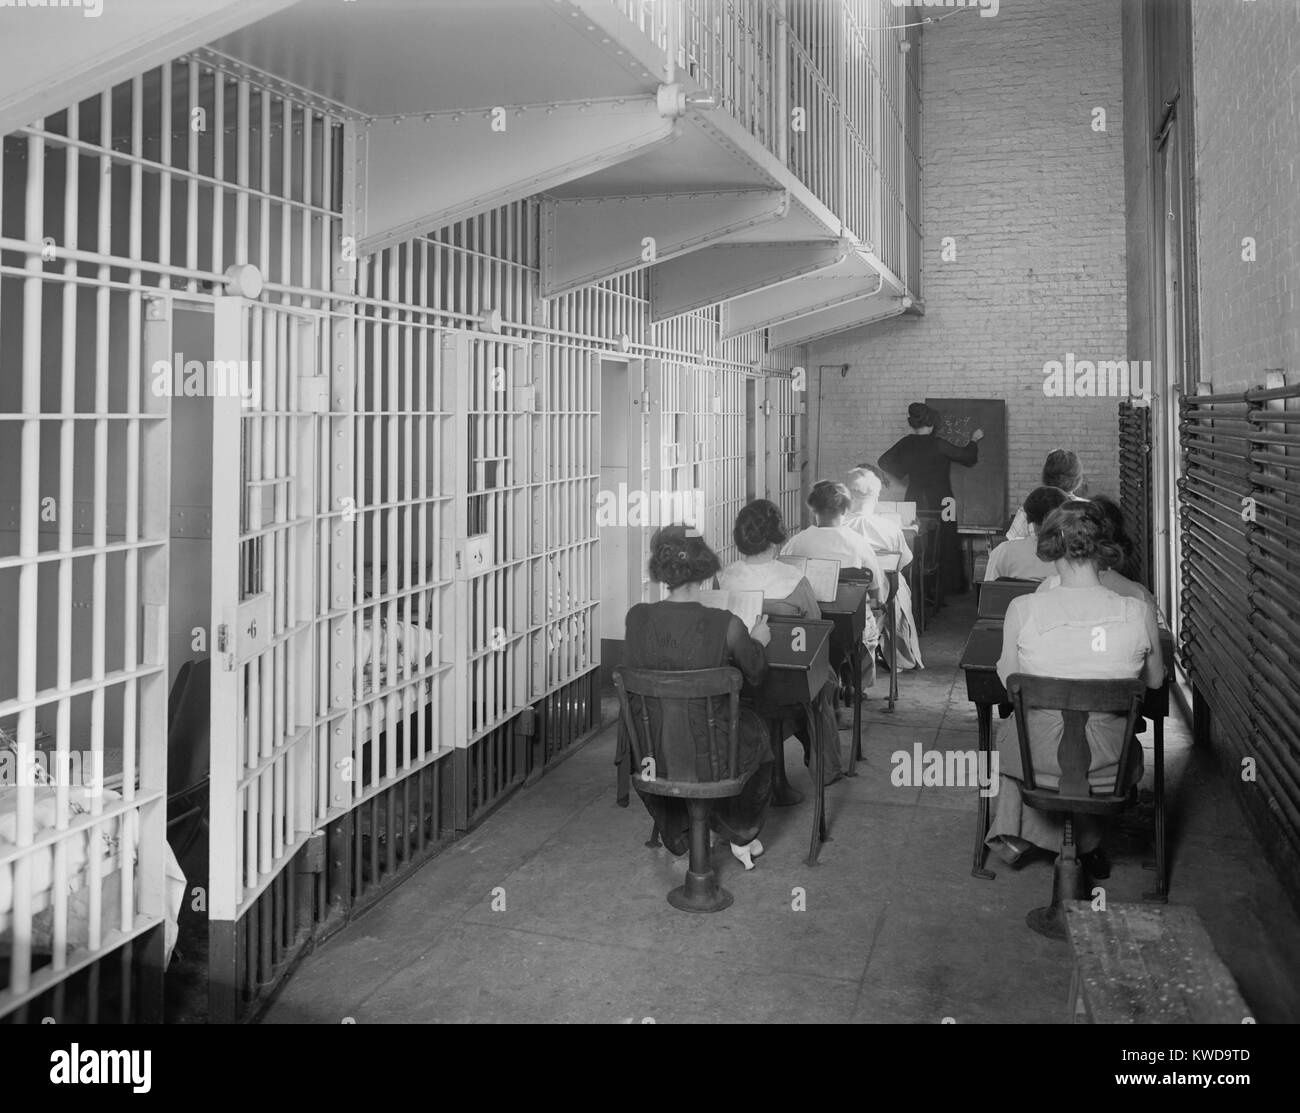 Young women at desks in an American jail c. 1920. Dressed in street clothing, they sit in two rows of desks in a - Stock Image